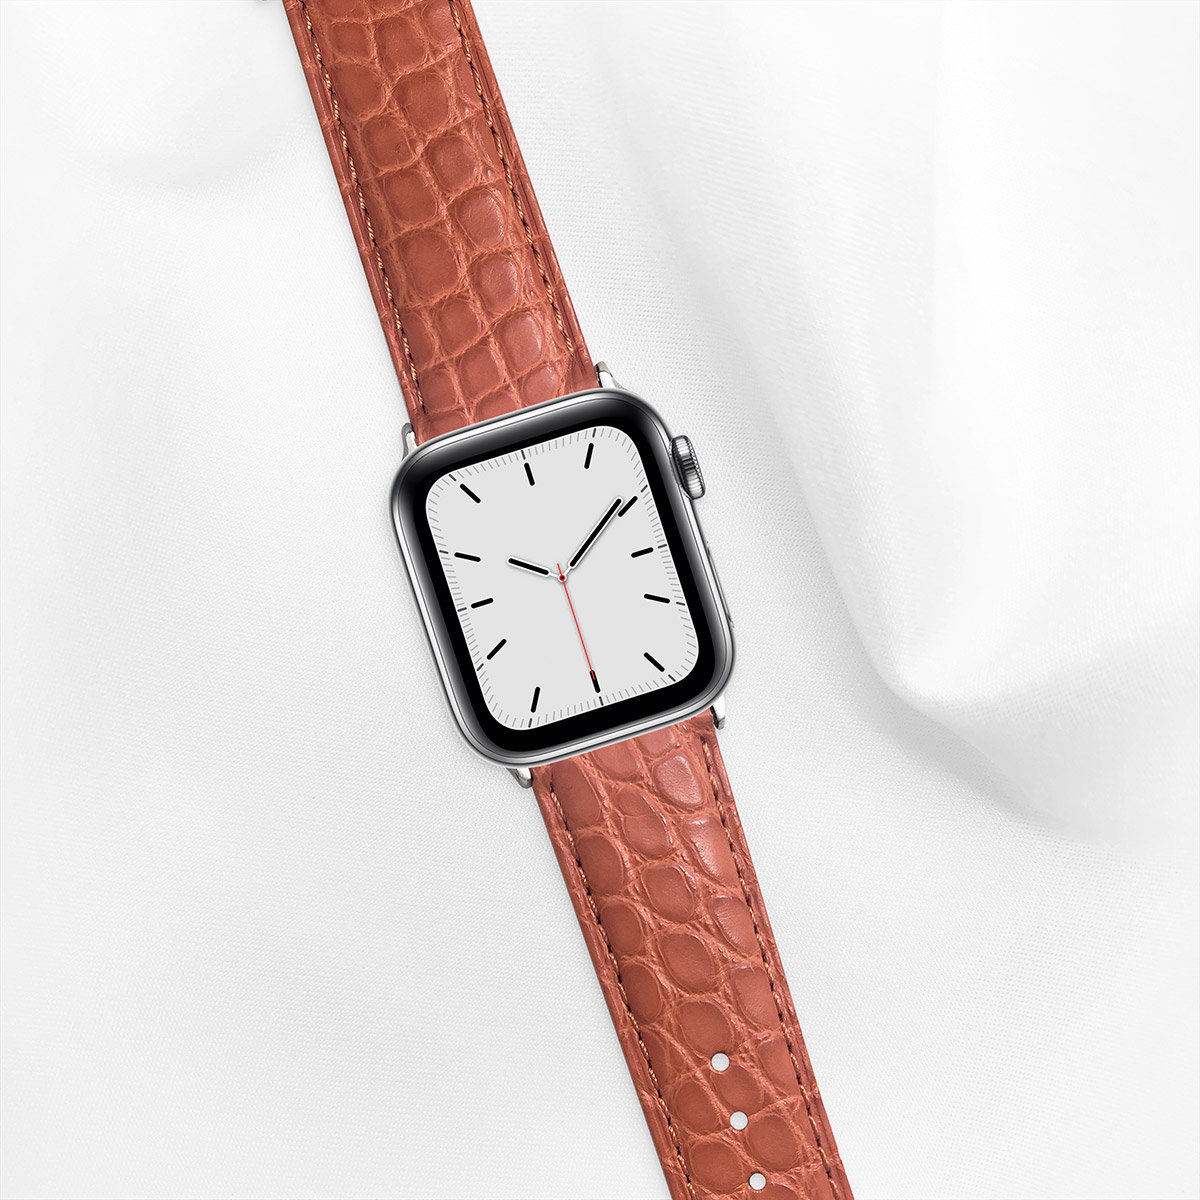 Matte Alligator 40mm Apple Watch 5 Strap, Ginger Orange, Round Scales, for Small Casing